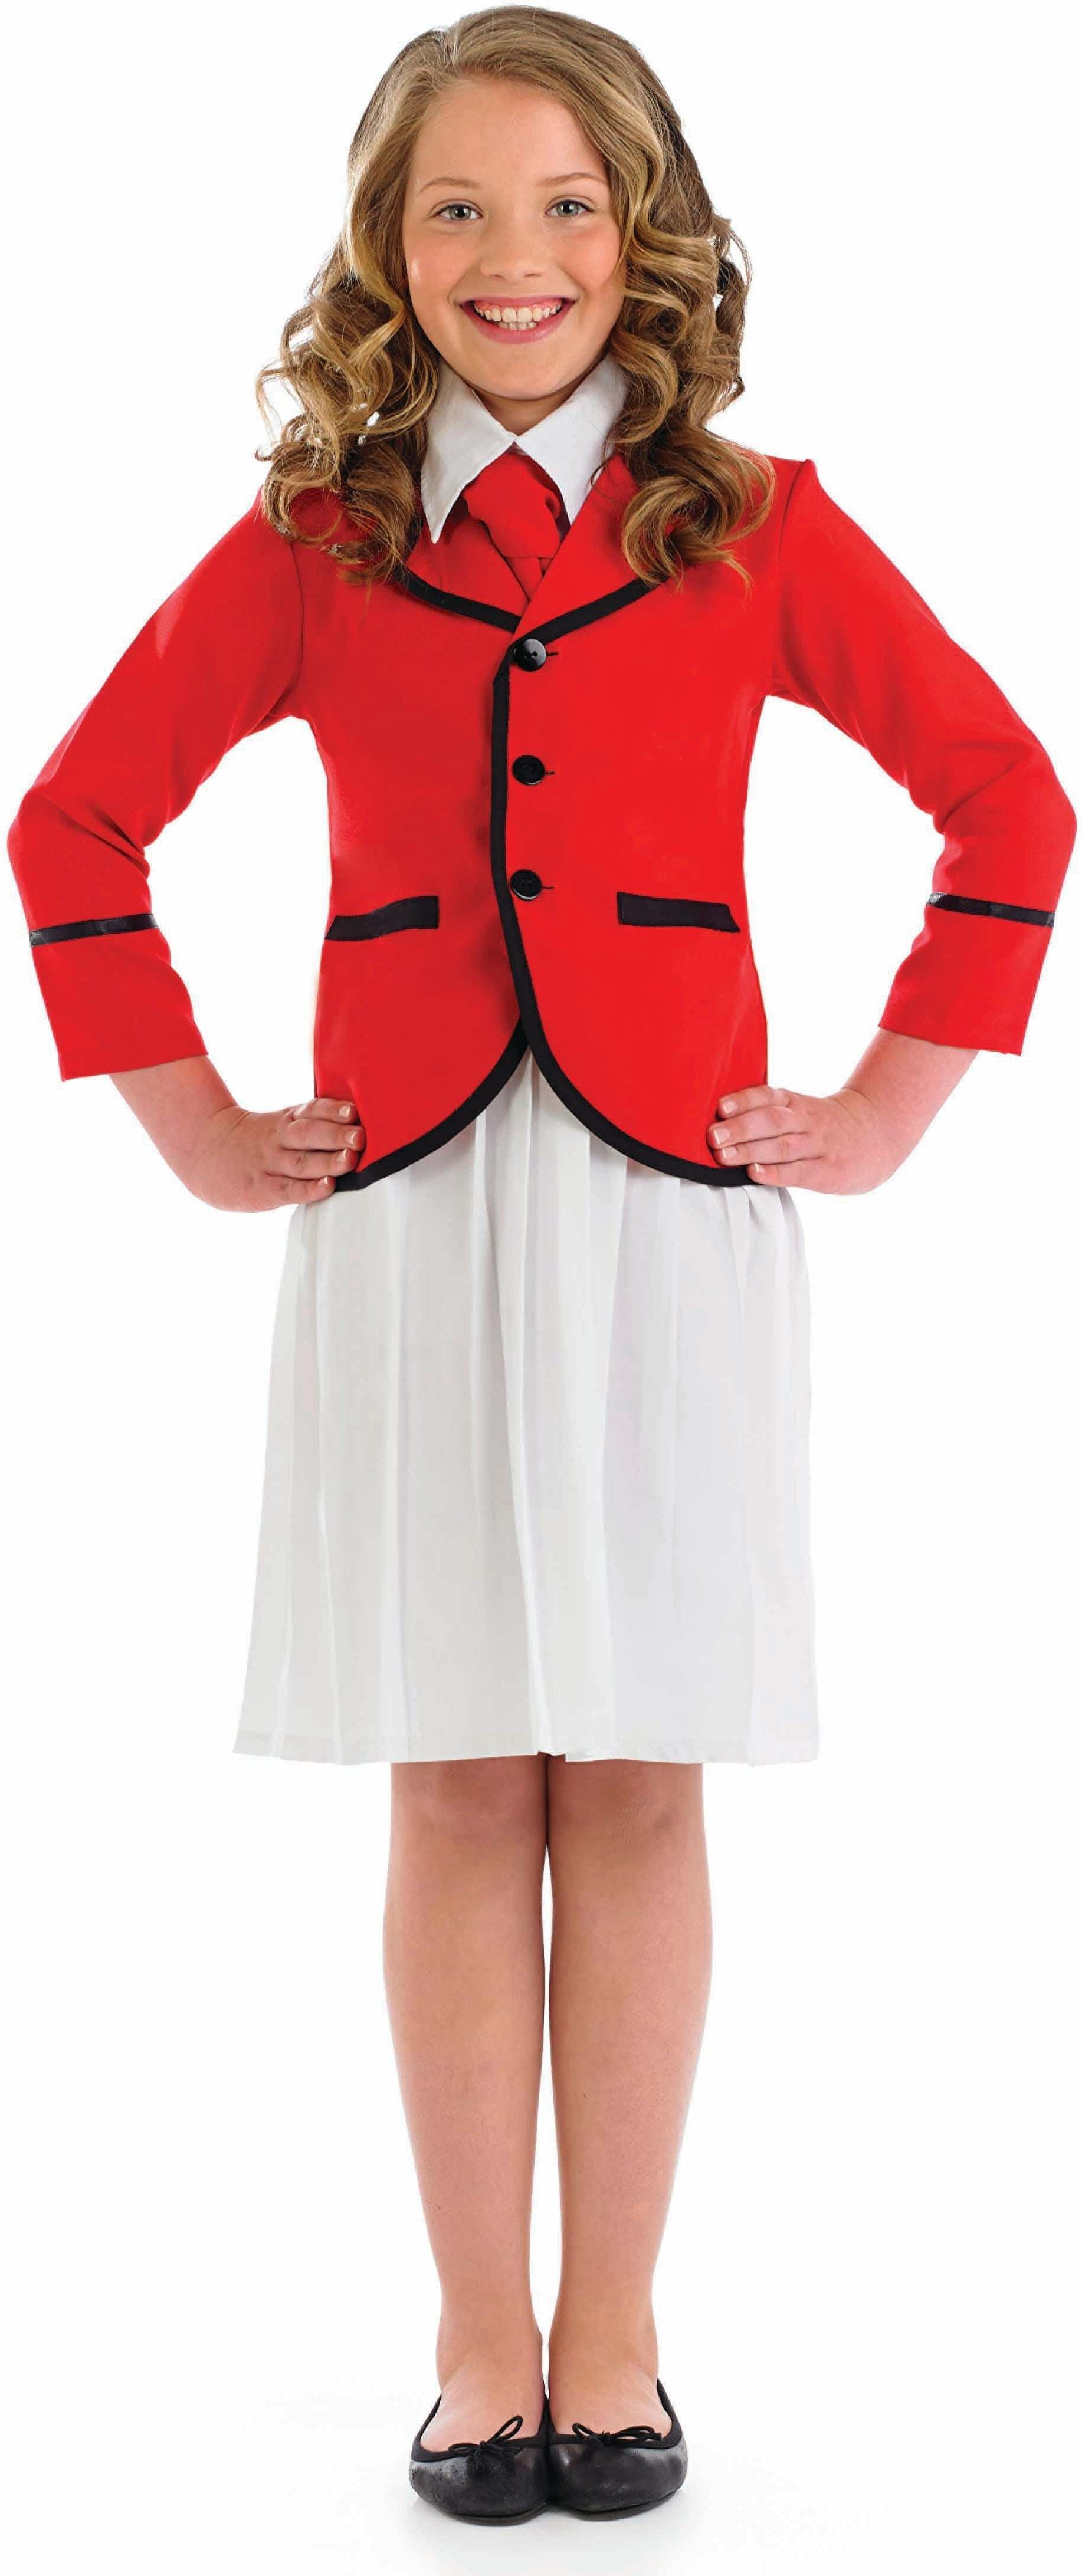 Girls Girls Holiday Camp Helper Holidaycamp Outfit - (Red,White)